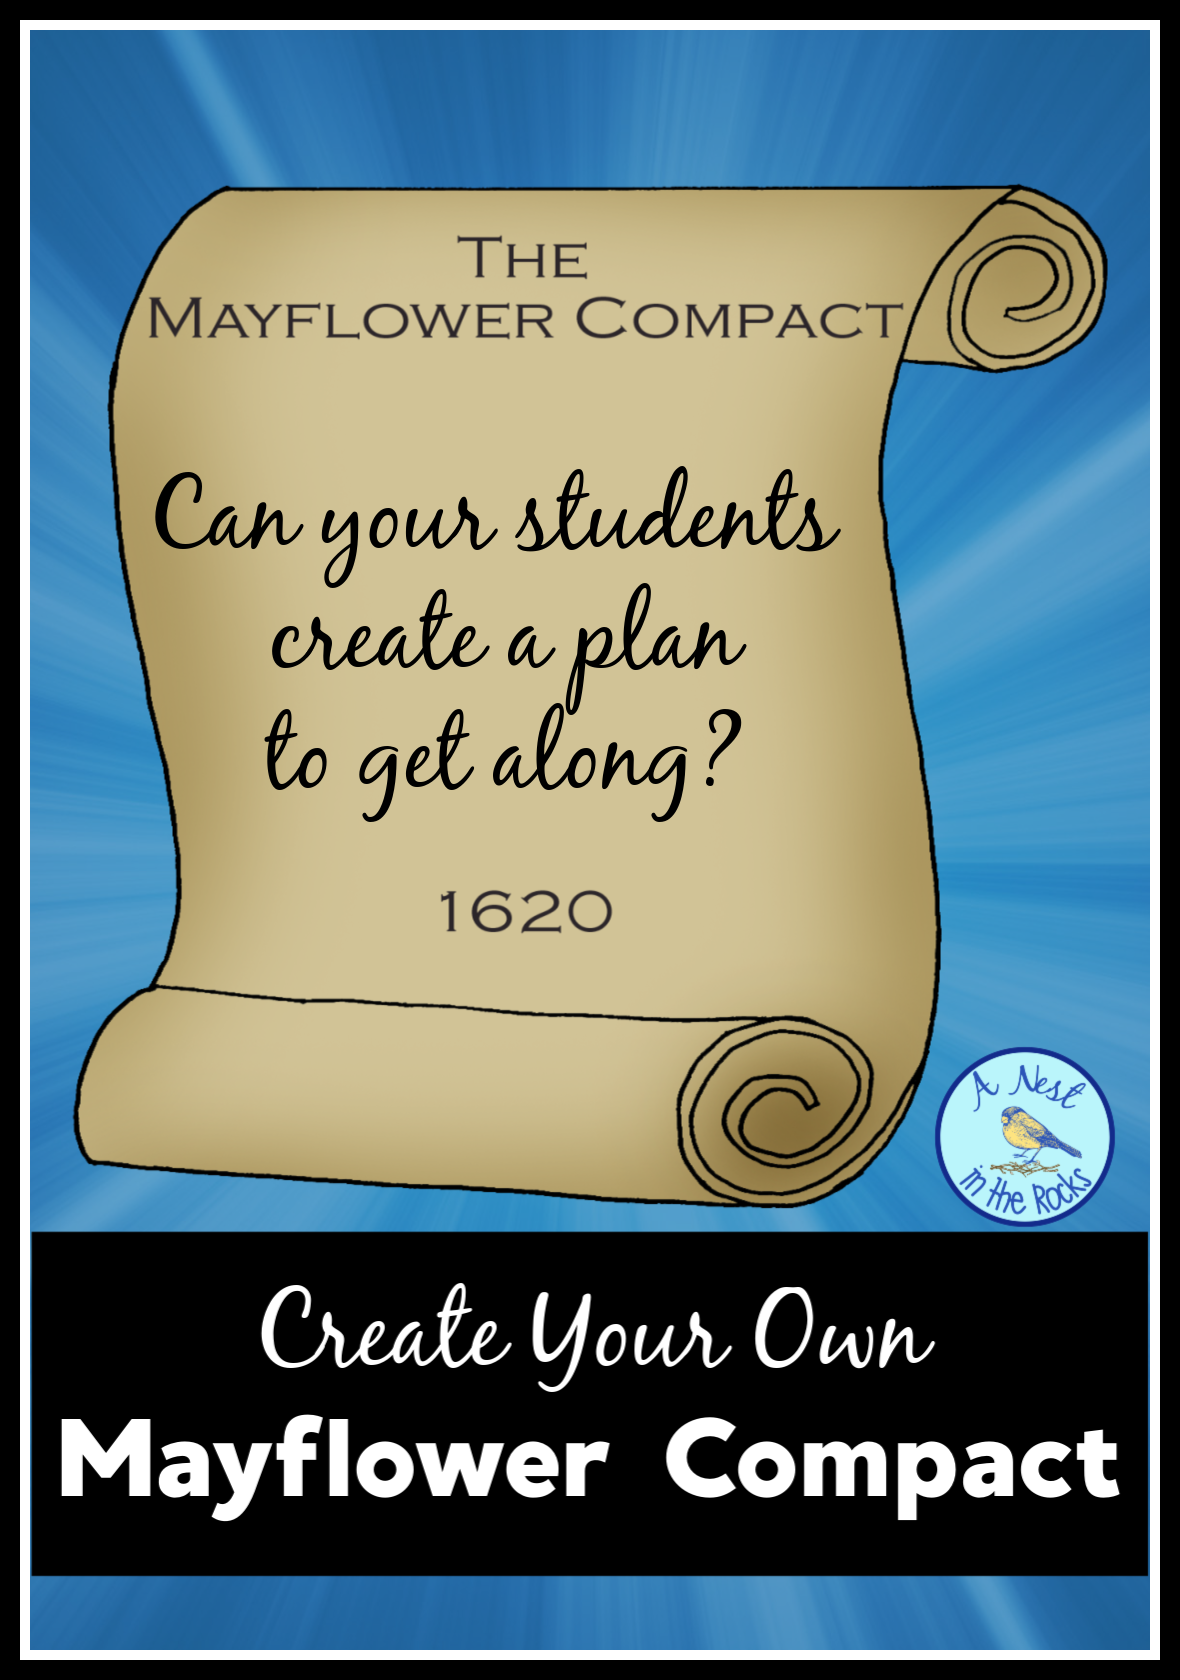 Create Your Own Mayflower Compact (With images